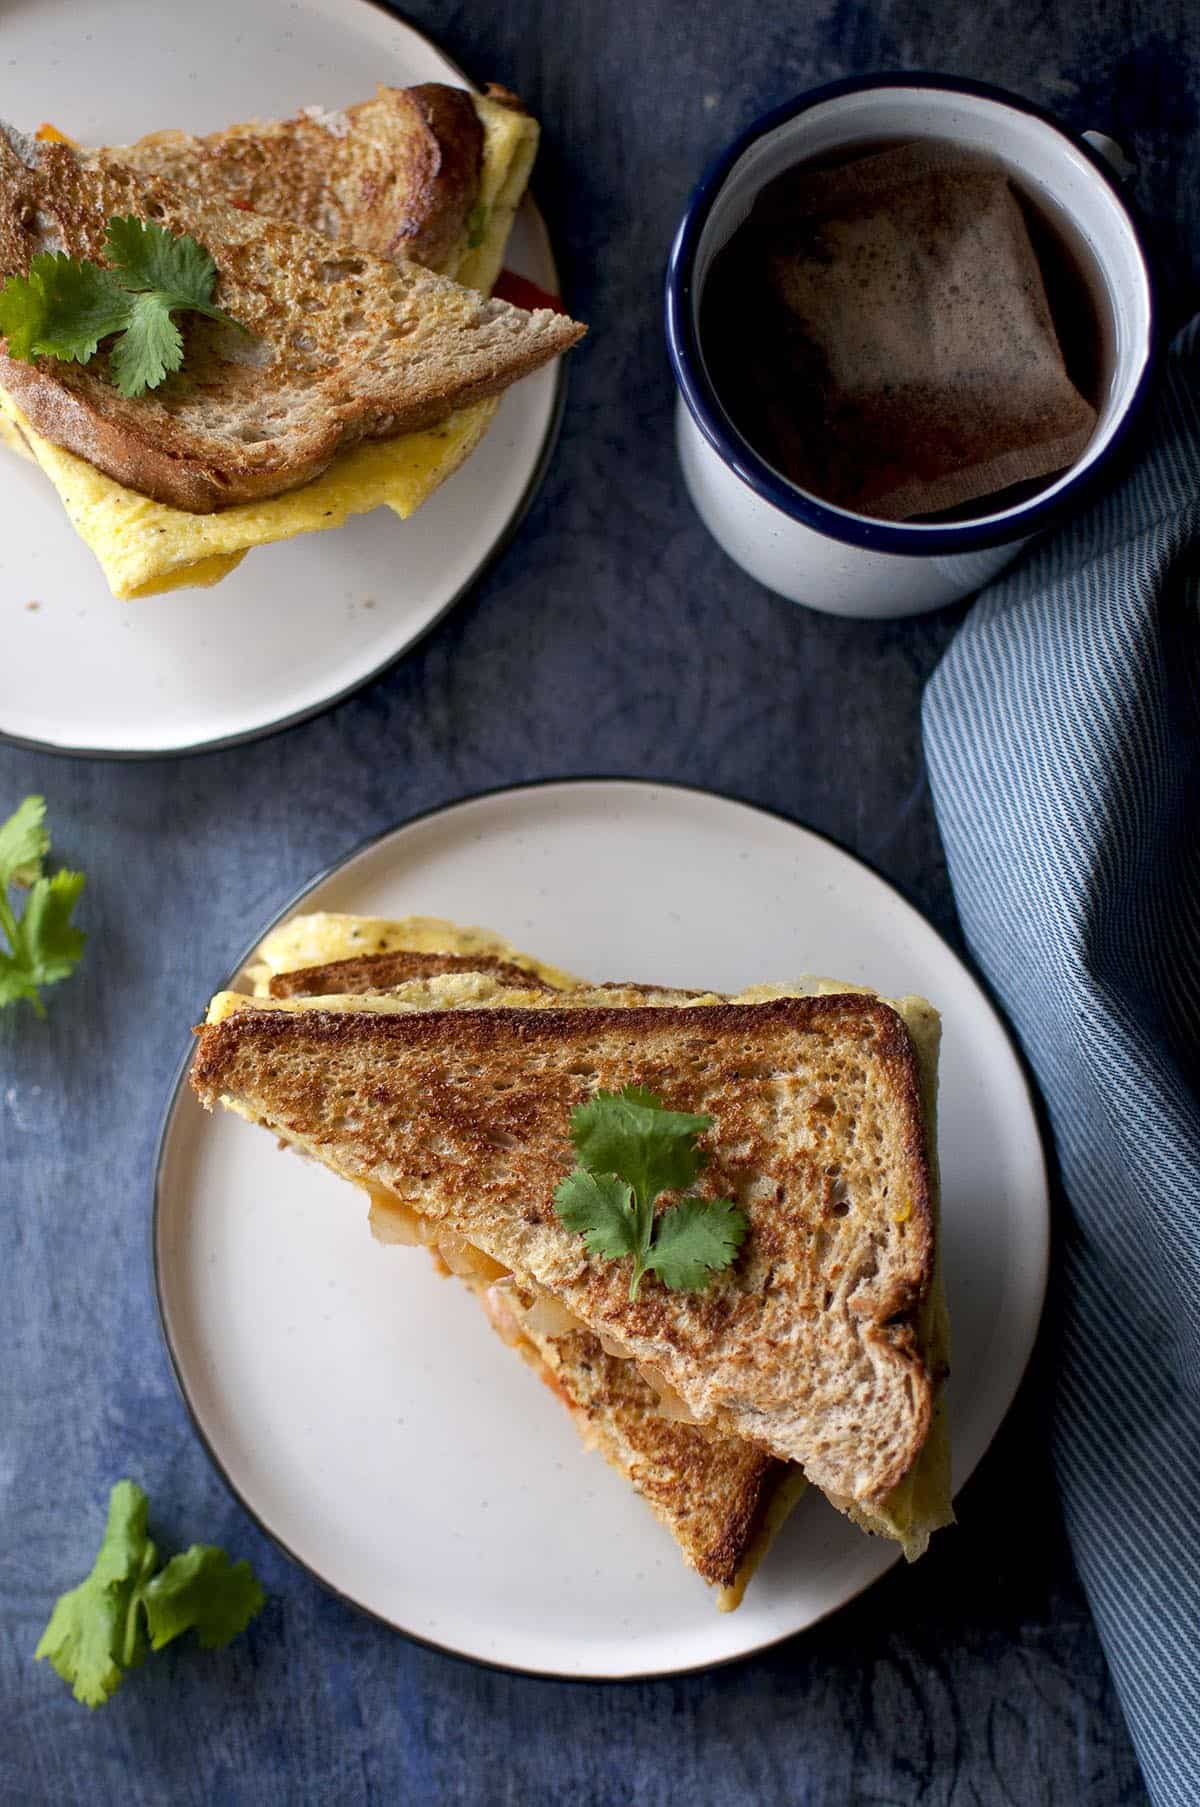 Top view of egg toast sandwich on a white plate with a enamel mug with tea in the background